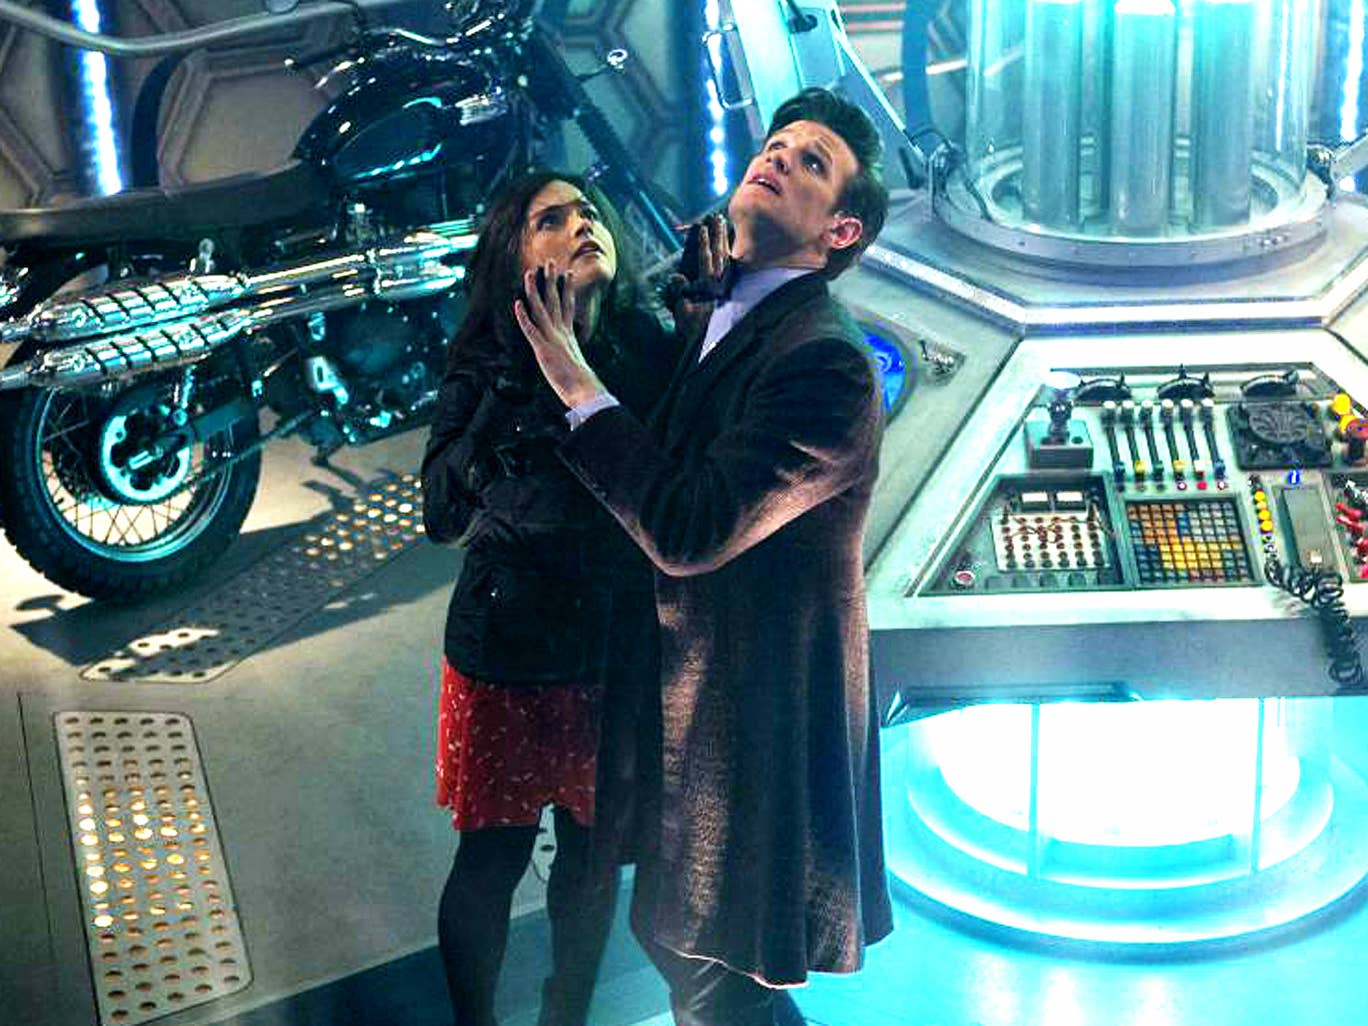 Jenna-Louise Coleman and Matt Smith in 'The Day of the Doctor'